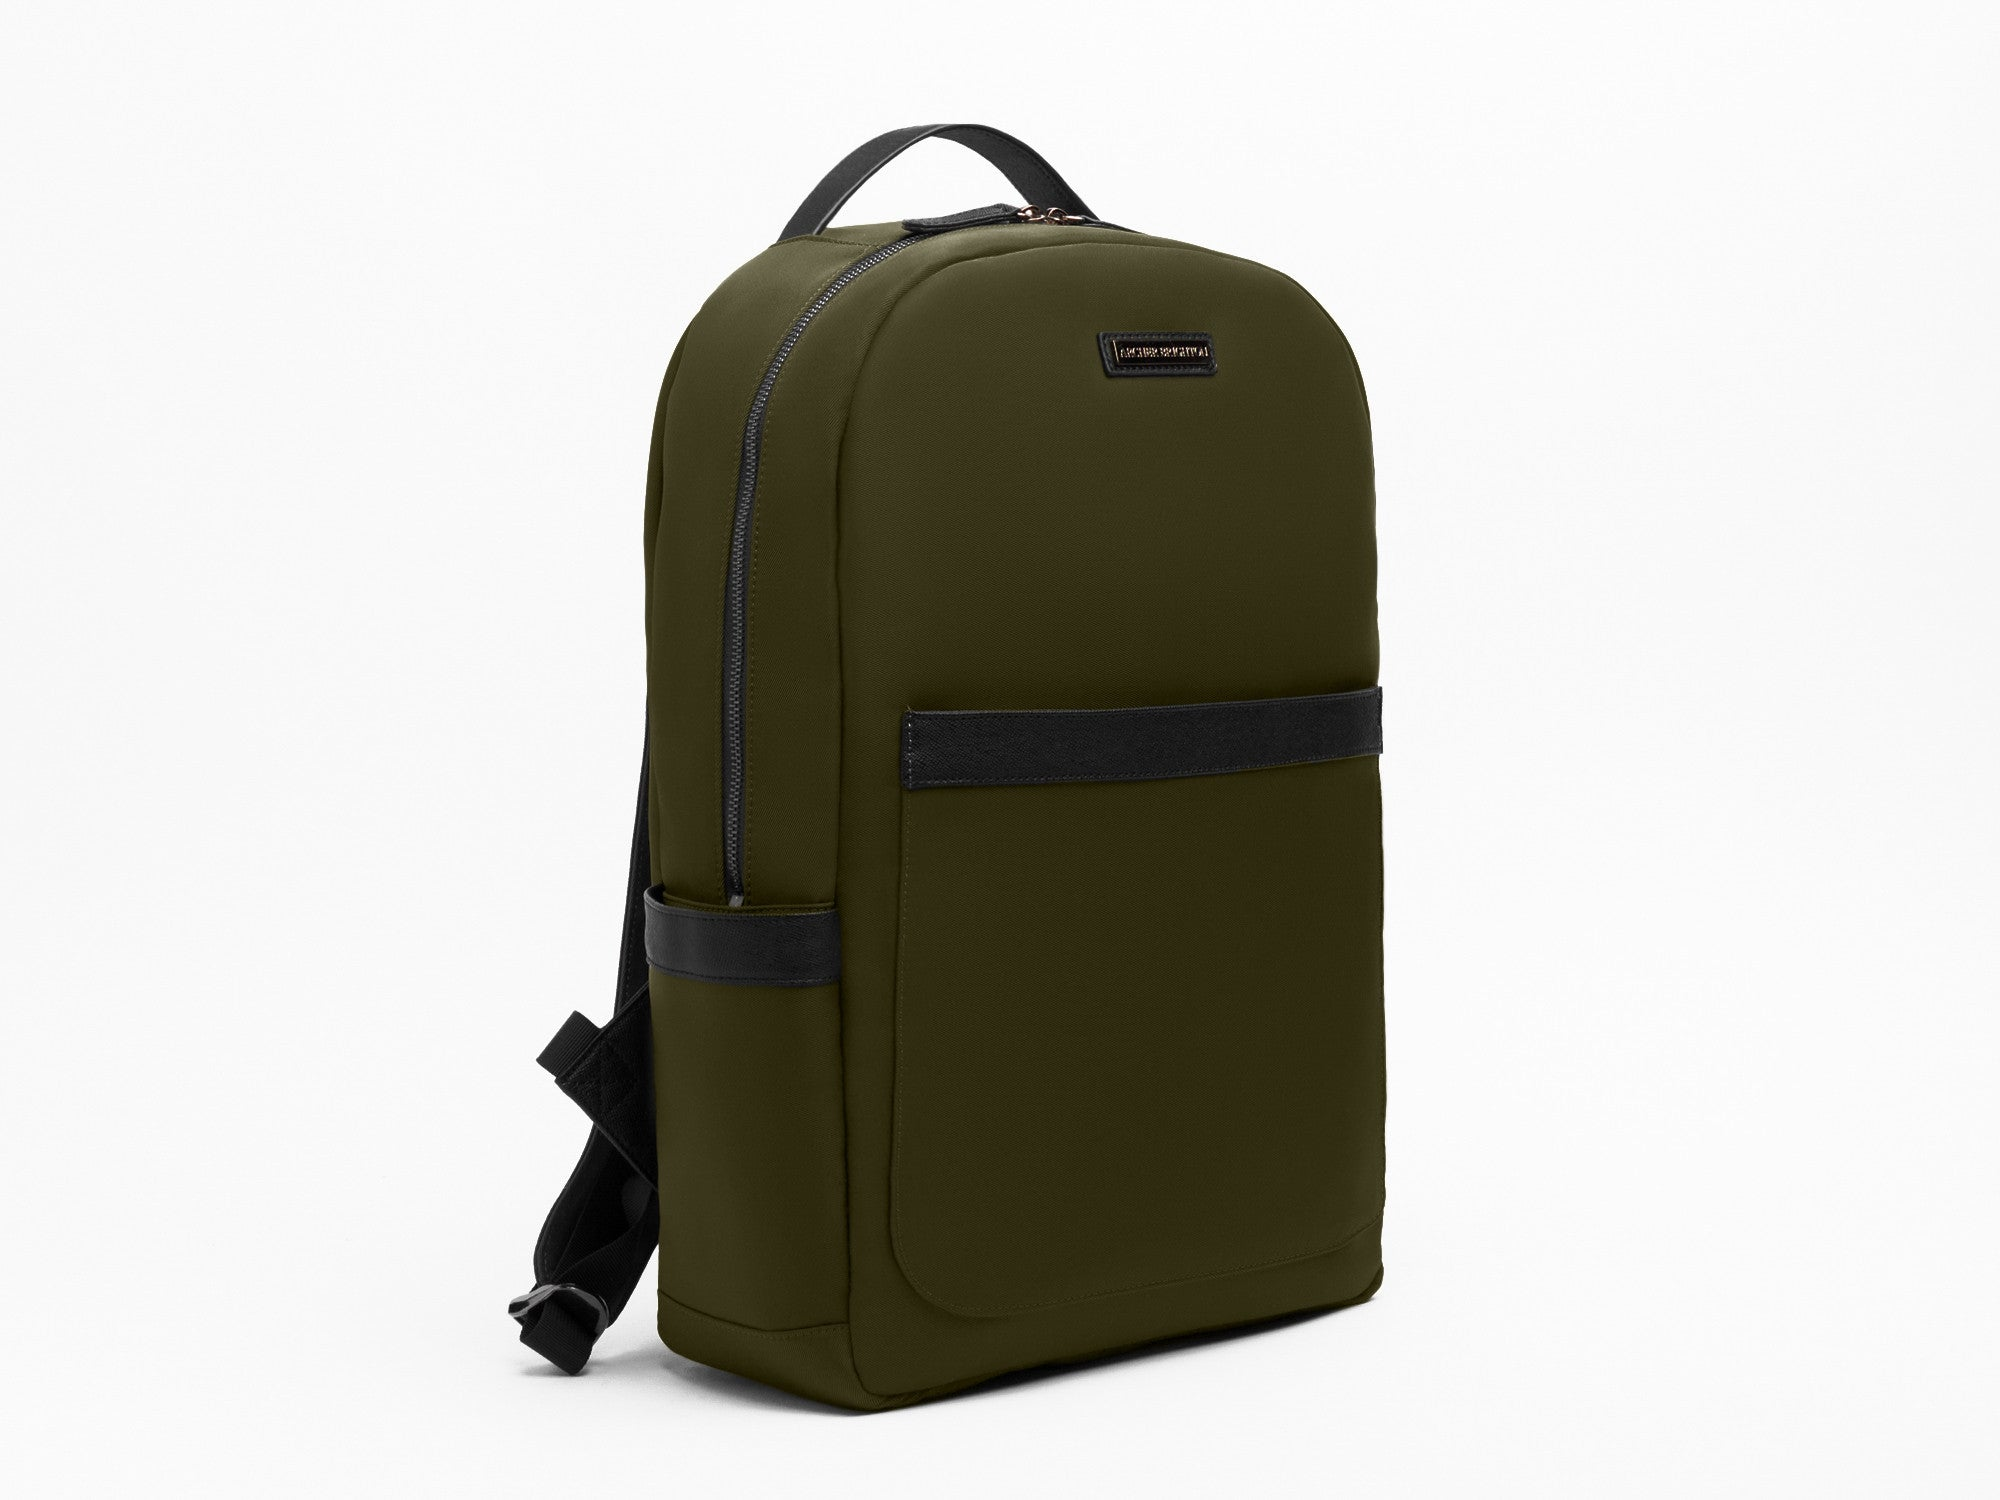 THE JAKE CARGO BACKPACK